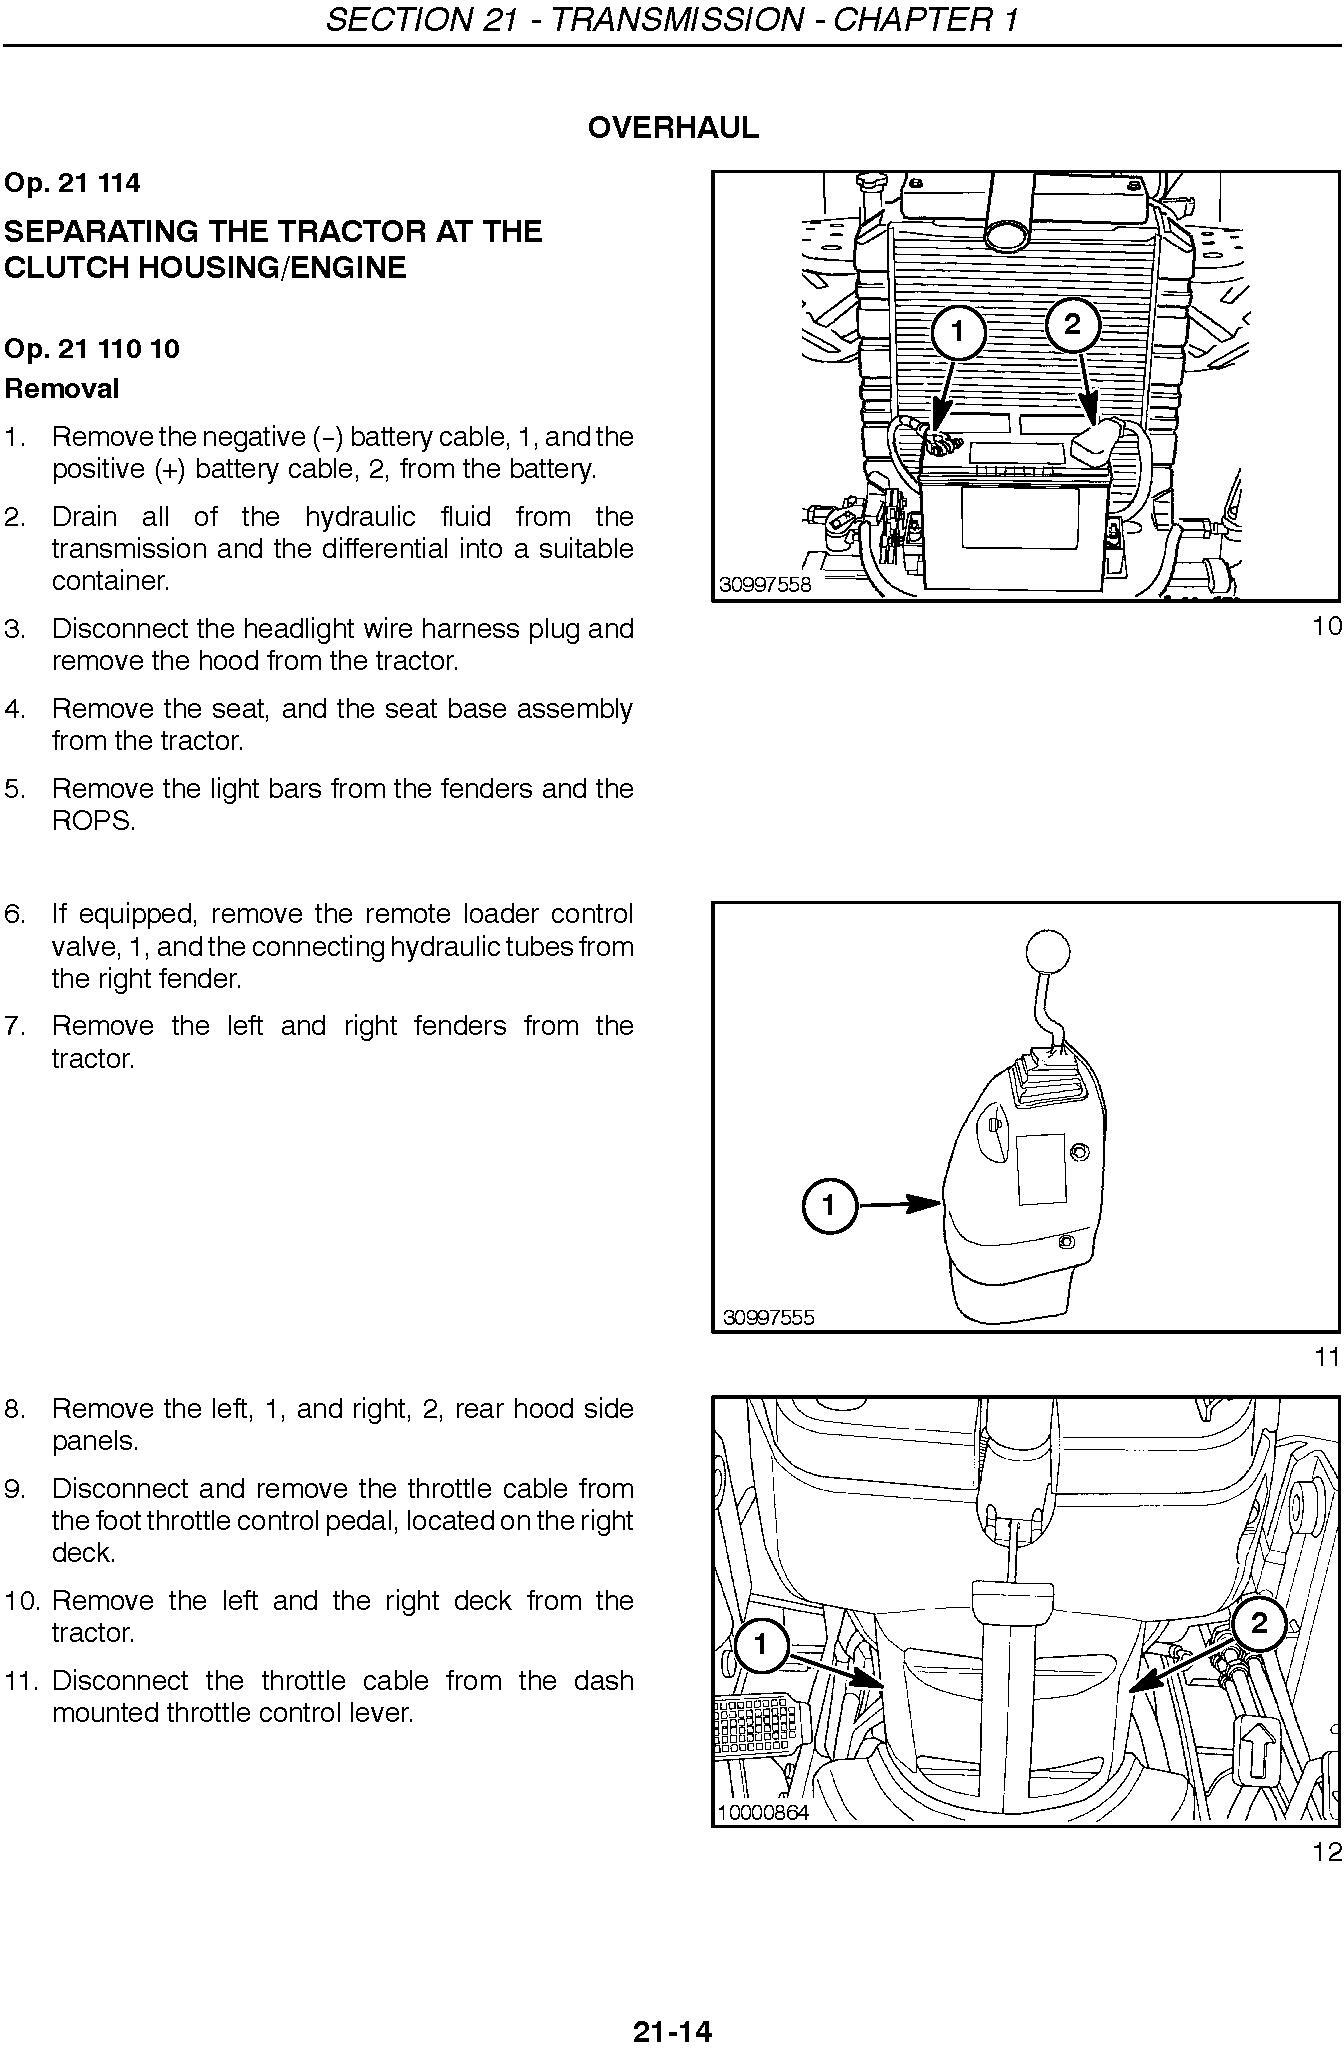 New Holland TC35A, TC35DA, TC40A, TC40DA, TC45A, TC45DA, Tractor Complete Service Manual - 1